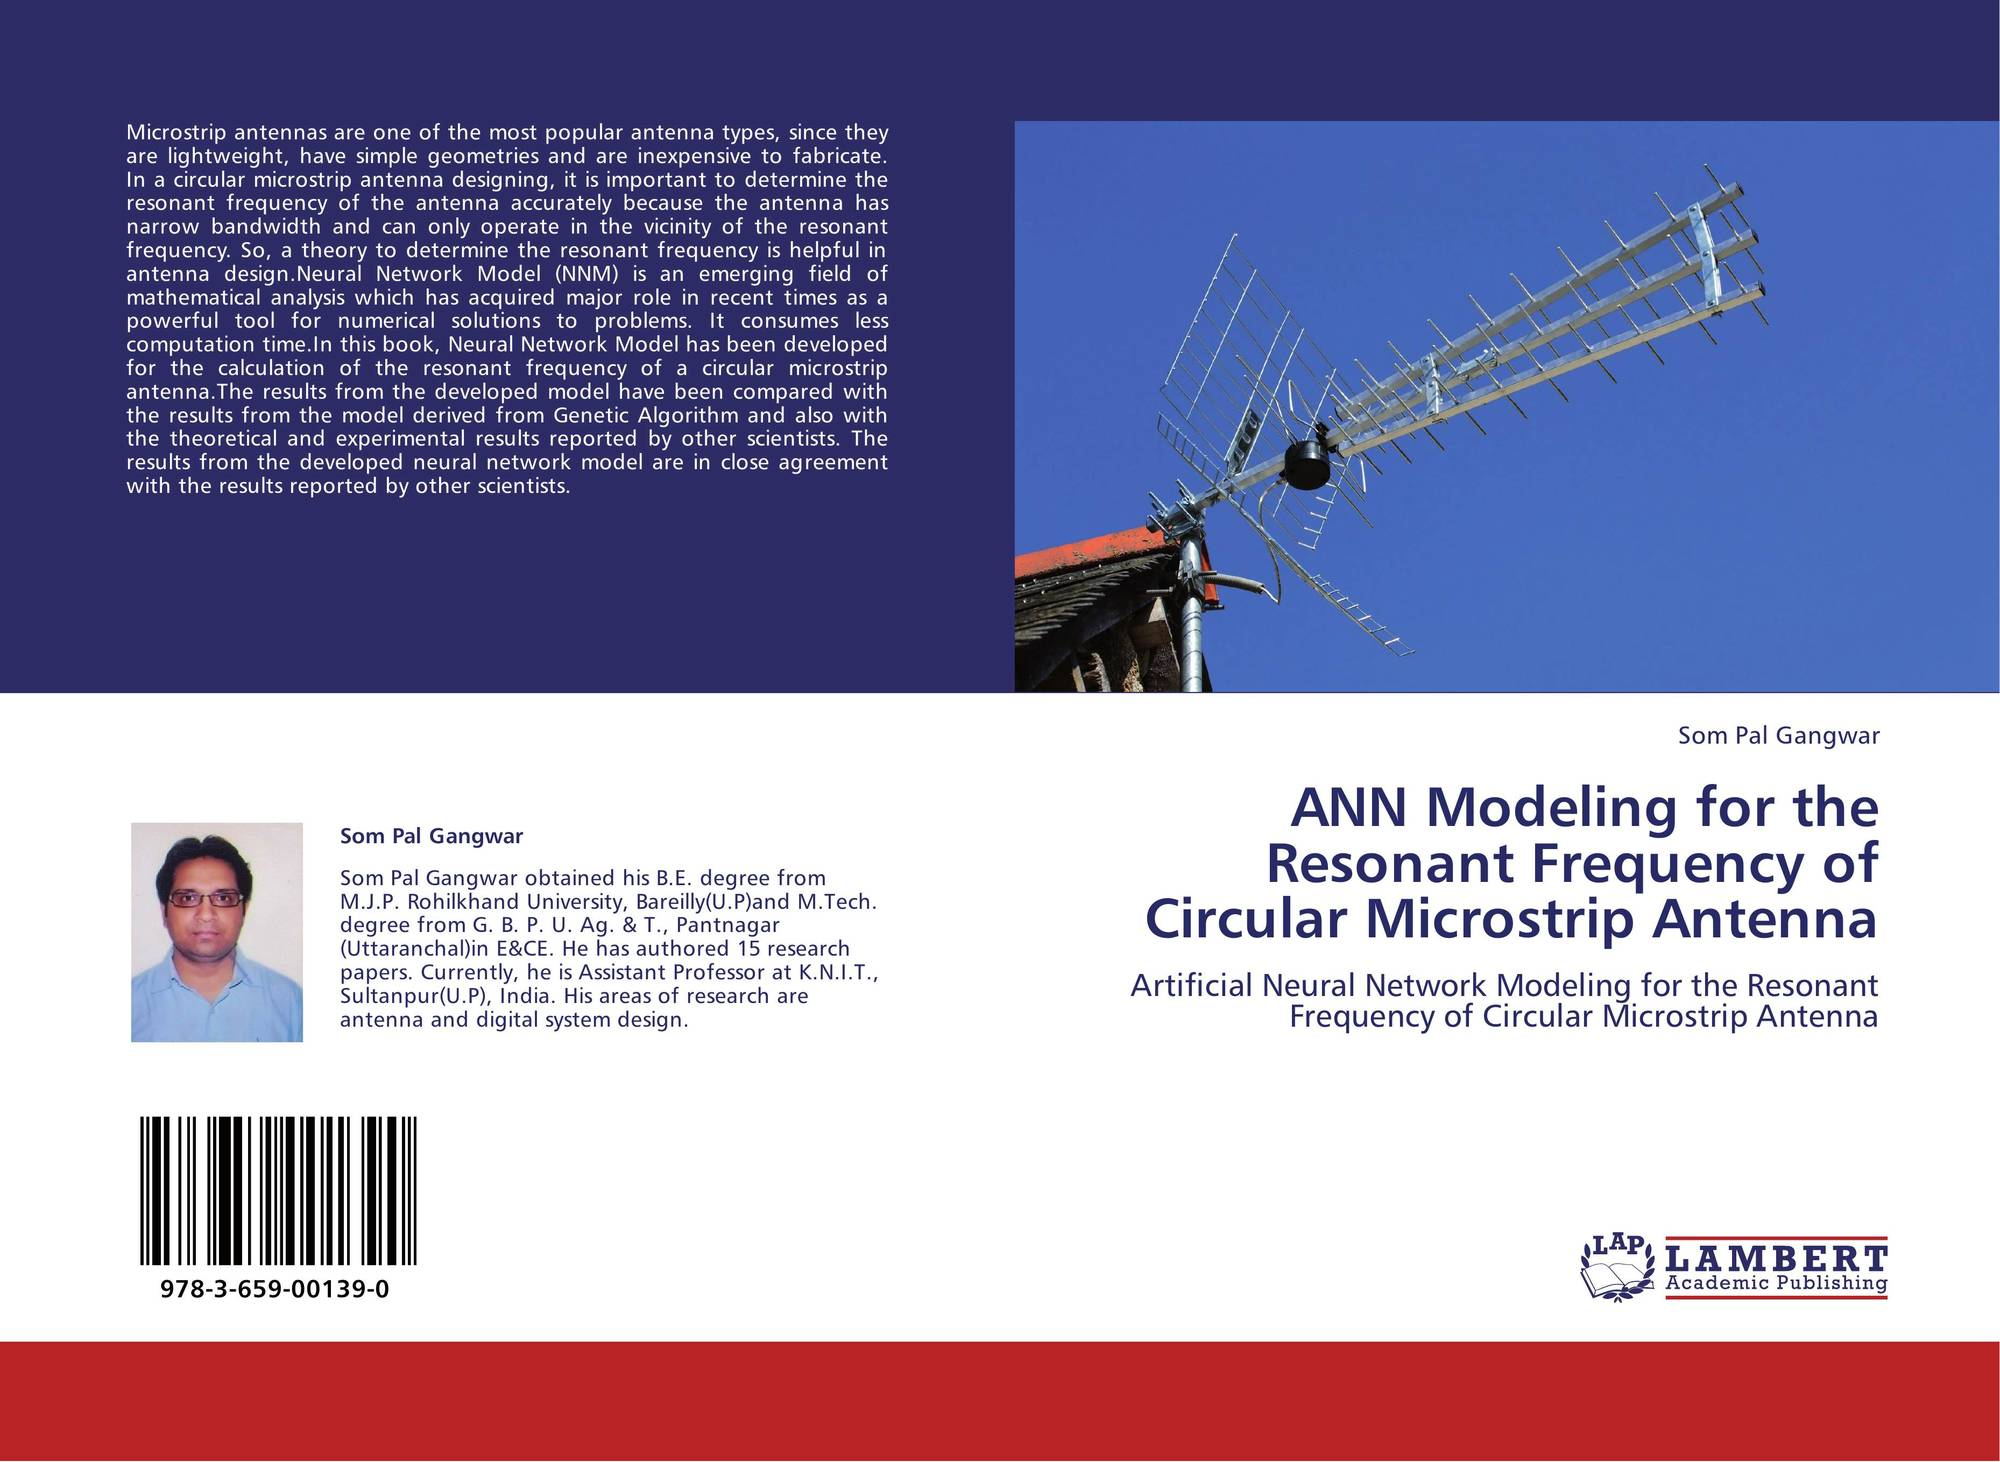 reconfigurable antenna thesis Ii abstract this thesis work is focused on the investigation of reconfigurable antennas enabled by non-toxic liquid metal, eutectic gallium indium (egain.